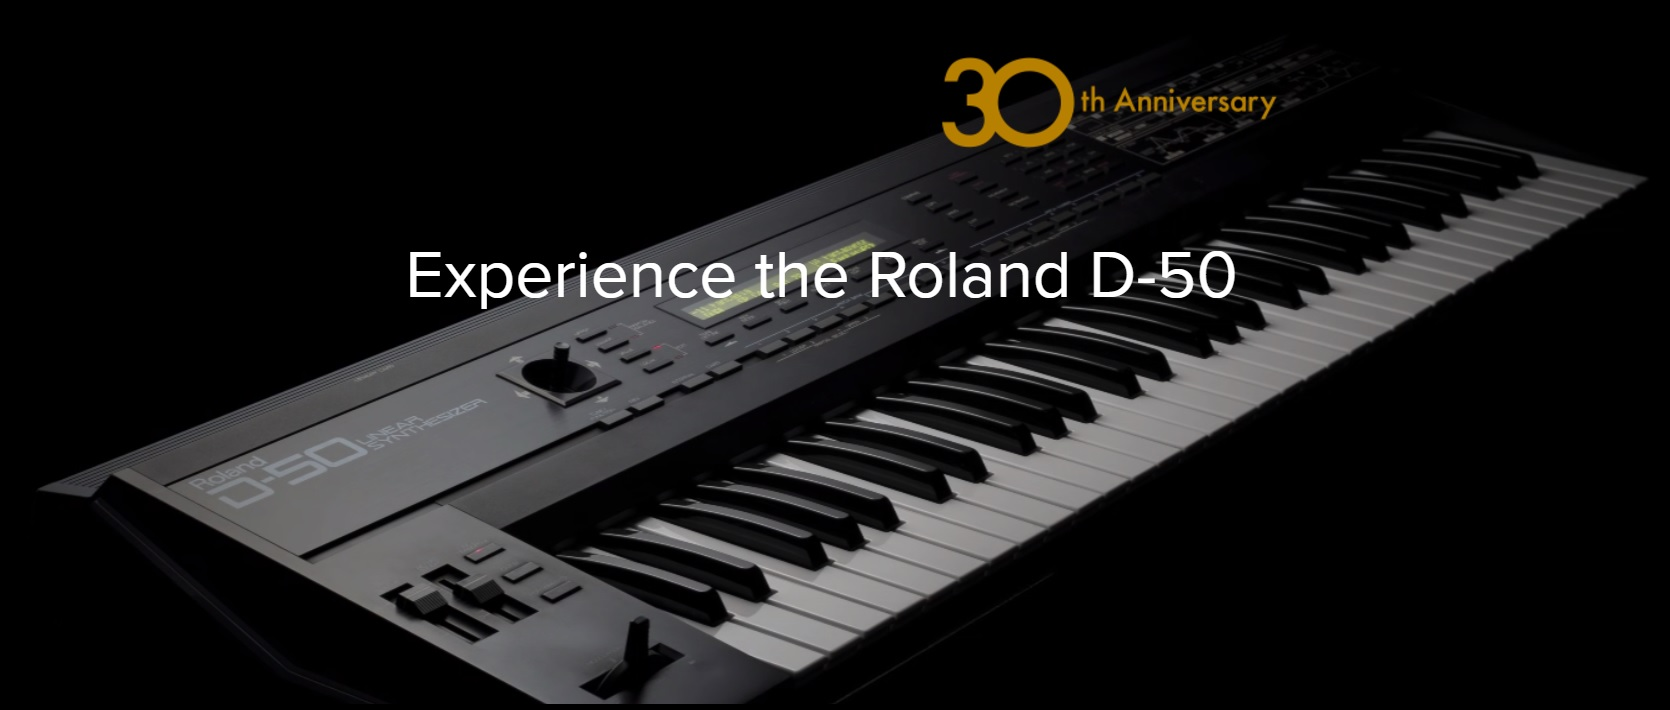 Experience the Roland D-50